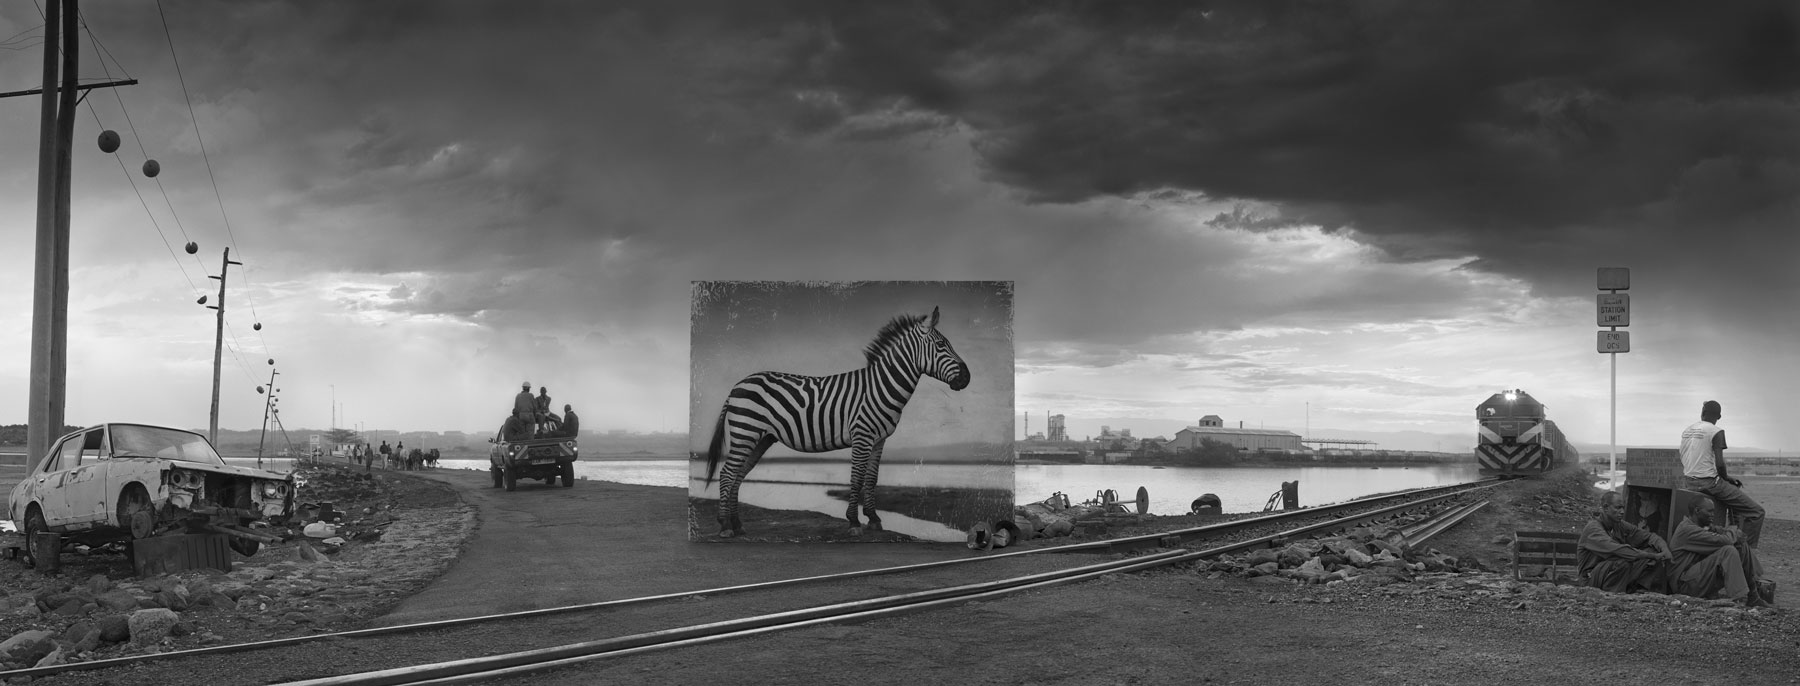 Nick Brandt_Inherit The Dust_ROAD-TO-FACTORY-WITH-ZEBRA